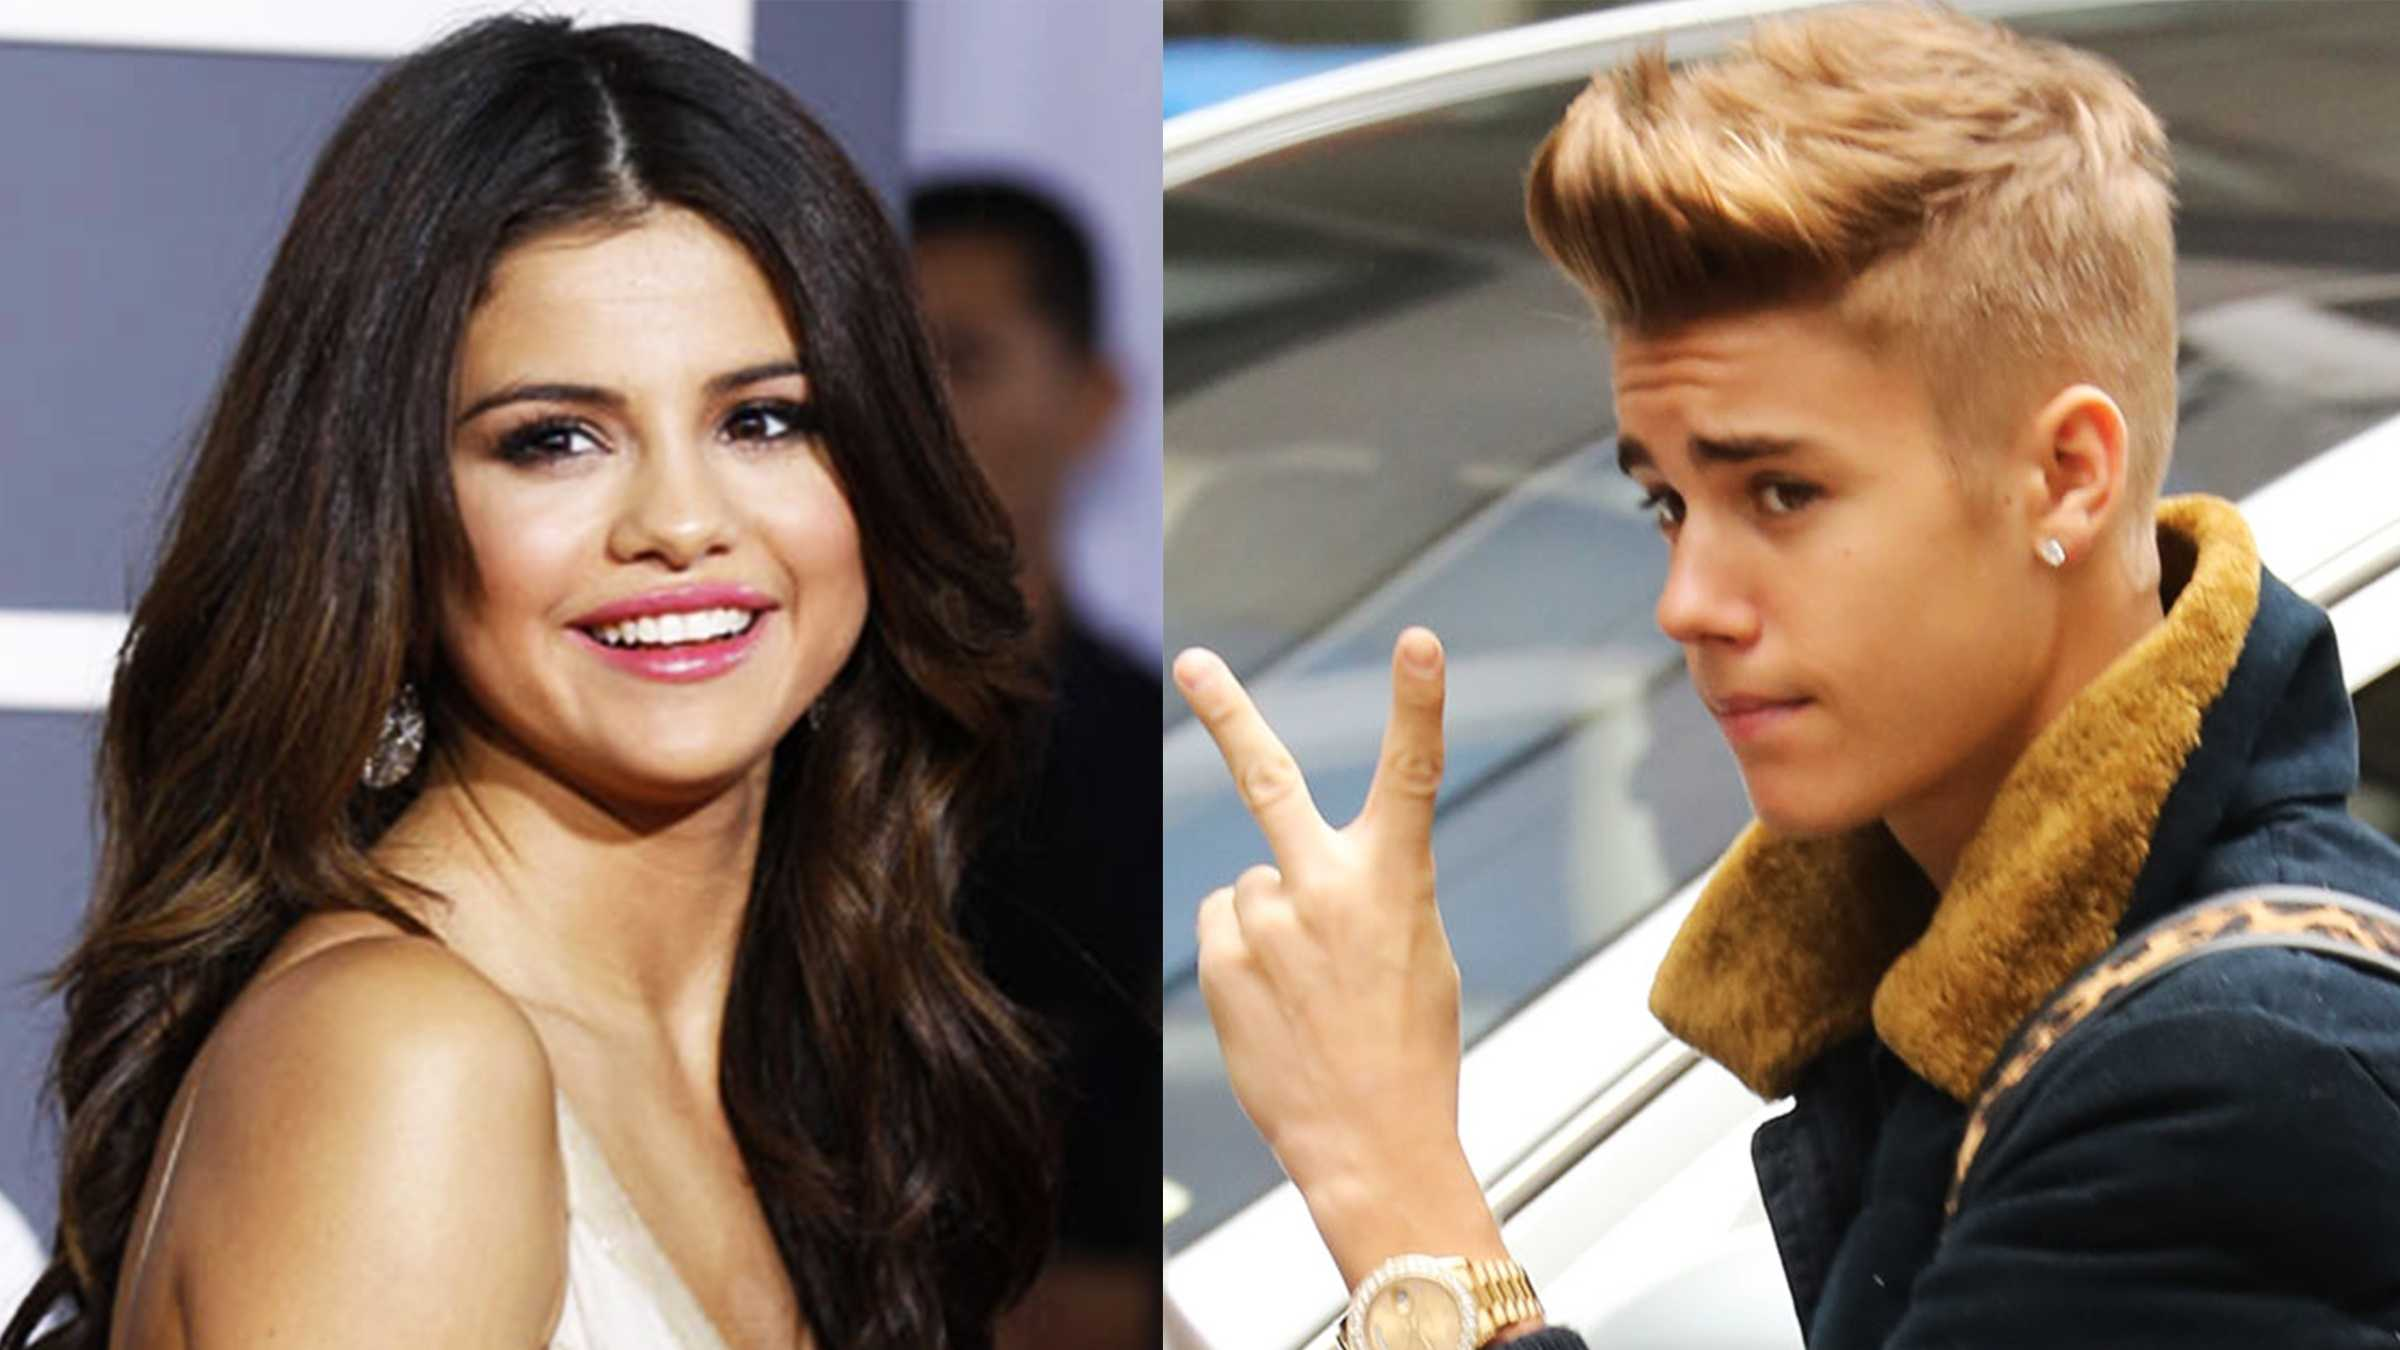 selena gomez and justin bieber couple.jpg